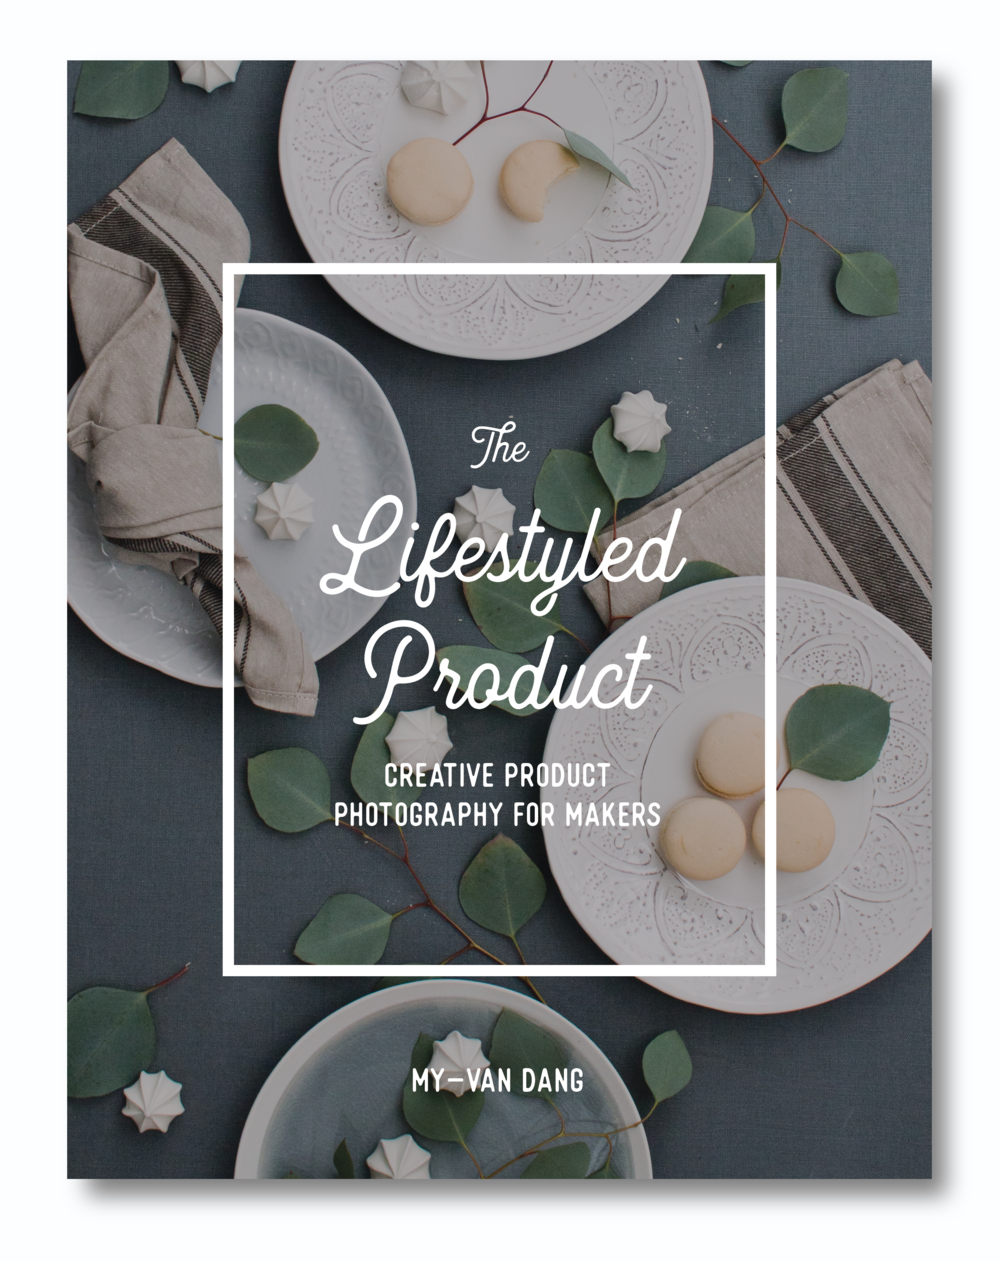 The Lifestyled Product | Creative Product Photography For Makers